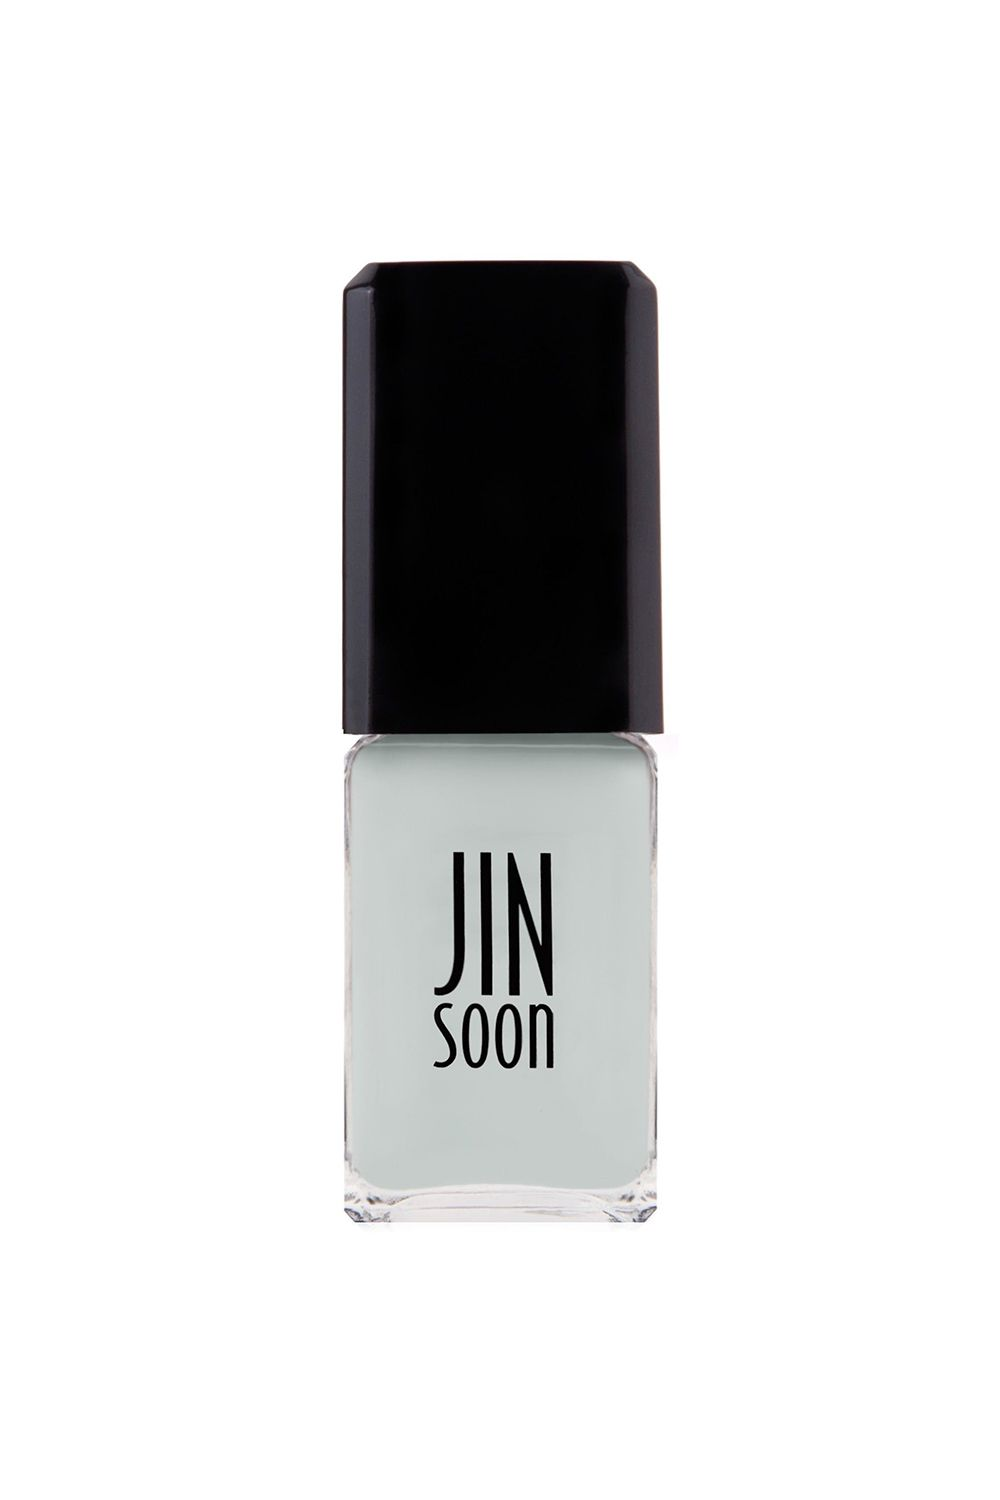 """<p>""""In the '90s, all the cool girls wore good old Wite-Out as """"nail polish."""" I still have a tender spot in my heart for that look, so I like this JINsoon polish plus a coat of their Matte Maker. Fashion: but make it an office product.<span class=""""redactor-invisible-space"""" data-verified=""""redactor"""" data-redactor-tag=""""span"""" data-redactor-class=""""redactor-invisible-space"""">"""" —<span class=""""redactor-invisible-space"""" data-verified=""""redactor"""" data-redactor-tag=""""span"""" data-redactor-class=""""redactor-invisible-space""""></span>Estelle Tang, ELLE.com Culture Editor</span></p><p><span class=""""redactor-invisible-space"""" data-verified=""""redactor"""" data-redactor-tag=""""span"""" data-redactor-class=""""redactor-invisible-space""""><em data-redactor-tag=""""em"""" data-verified=""""redactor"""">JINsoon Nail Polish in Kookie White, $18; <a href=""""http://jinsoon.com/kookie-white/"""" data-tracking-id=""""recirc-text-link"""">jinsoon.com</a></em></span></p><p><em data-redactor-tag=""""em"""" data-verified=""""redactor""""><span class=""""redactor-invisible-space"""" data-verified=""""redactor"""" data-redactor-tag=""""span"""" data-redactor-class=""""redactor-invisible-space""""></span>JINsoon Matte Maker</em><span class=""""redactor-invisible-space"""" data-verified=""""redactor"""" data-redactor-tag=""""span"""" data-redactor-class=""""redactor-invisible-space""""><em data-redactor-tag=""""em"""" data-verified=""""redactor"""">, $18; </em><a href=""""http://jinsoon.com/matte-maker-matte-top-coat/"""" data-tracking-id=""""recirc-text-link""""><em data-redactor-tag=""""em"""" data-verified=""""redactor"""">jinsoon.com</em></a></span></p>"""